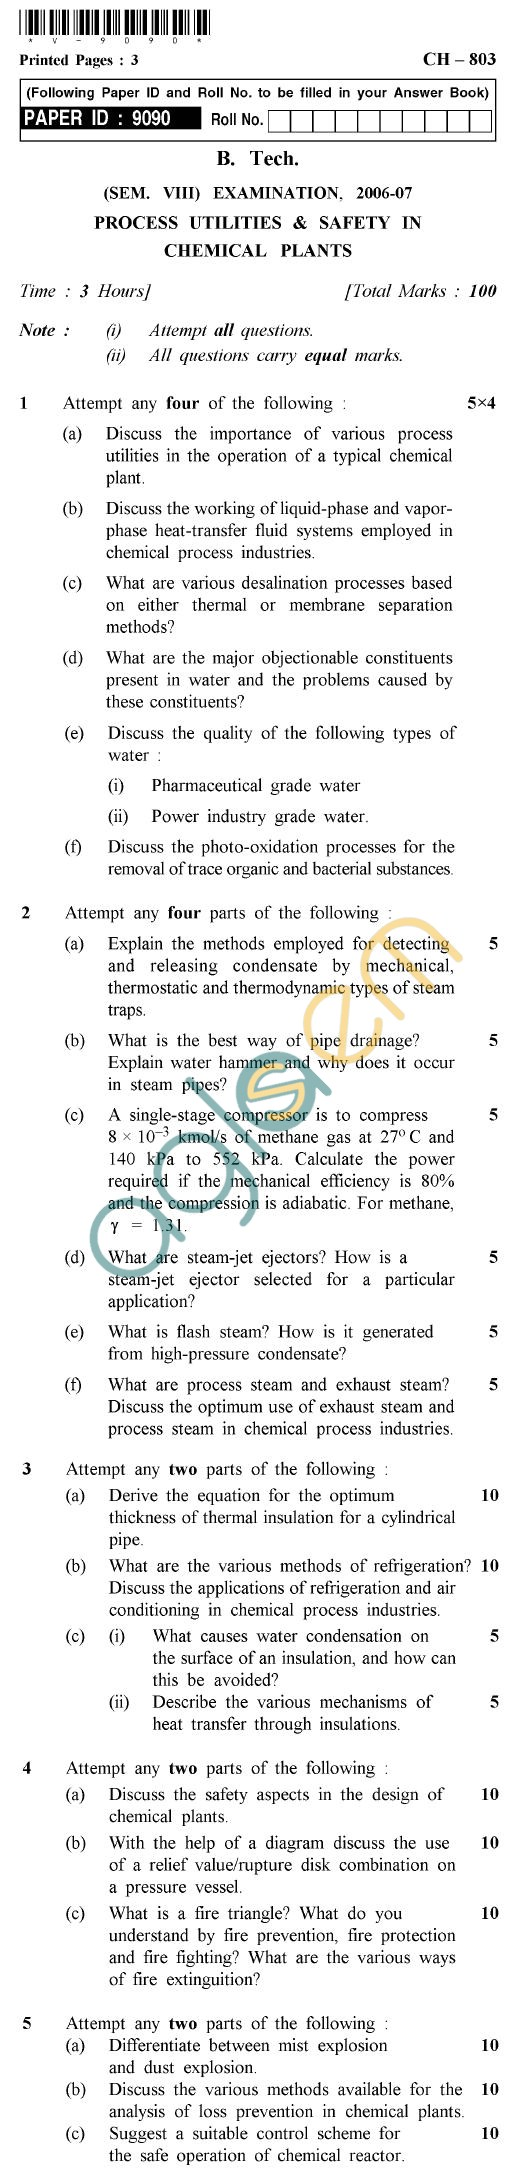 UPTU B.Tech Question Papers -CH-803 - Process Utilities & Safety in Chemical Plants